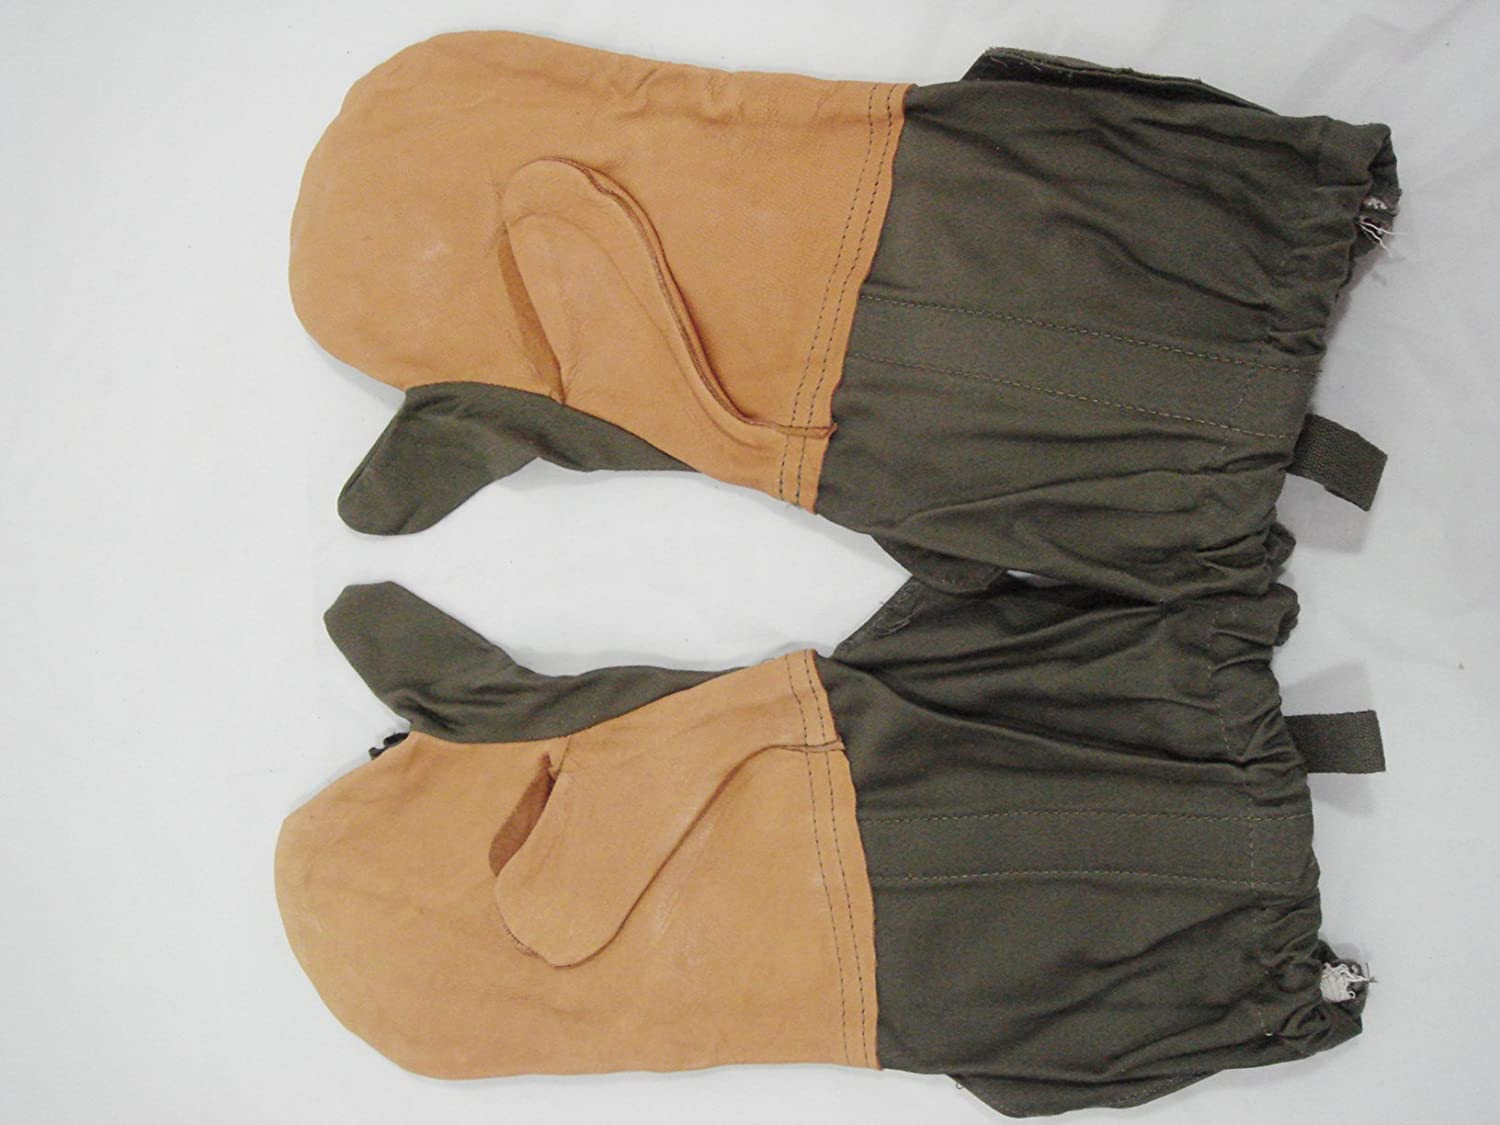 Official US Military Surplus Army Winter Mittens Gloves Size Large US Government Contractor 8414-00-926-1527